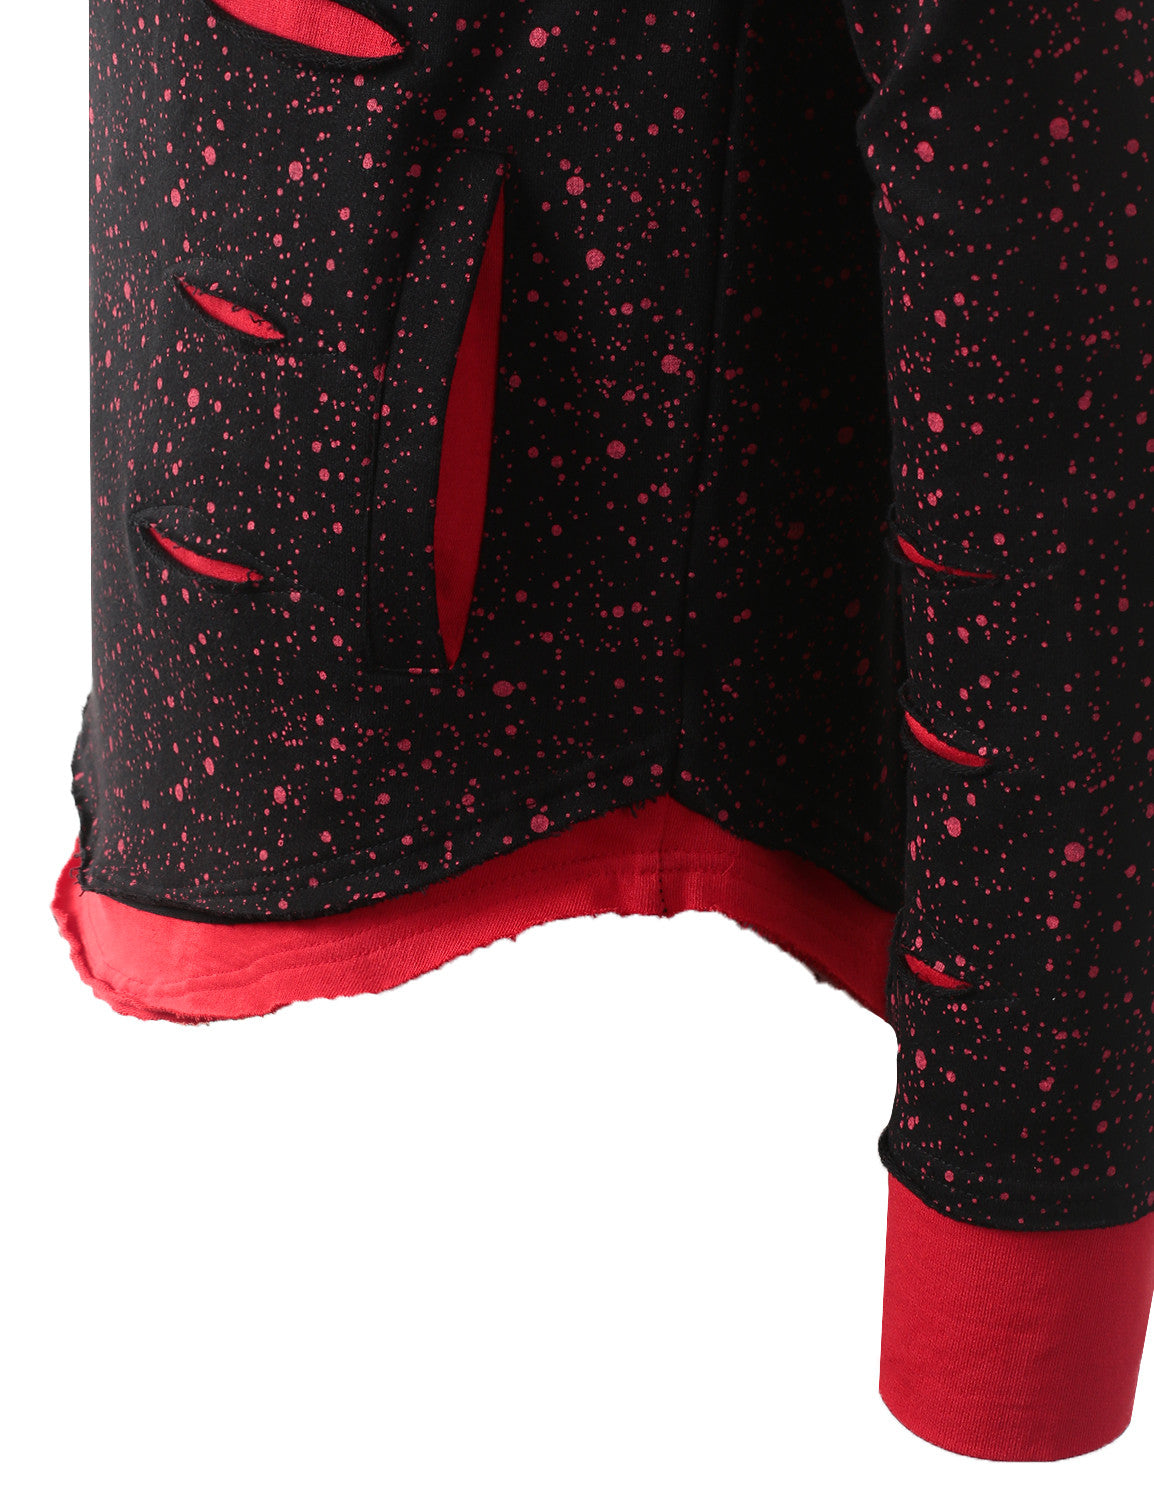 RED Ripped Splatter Long Sleeve Hoodie Sweatshirts - URBANCREWS